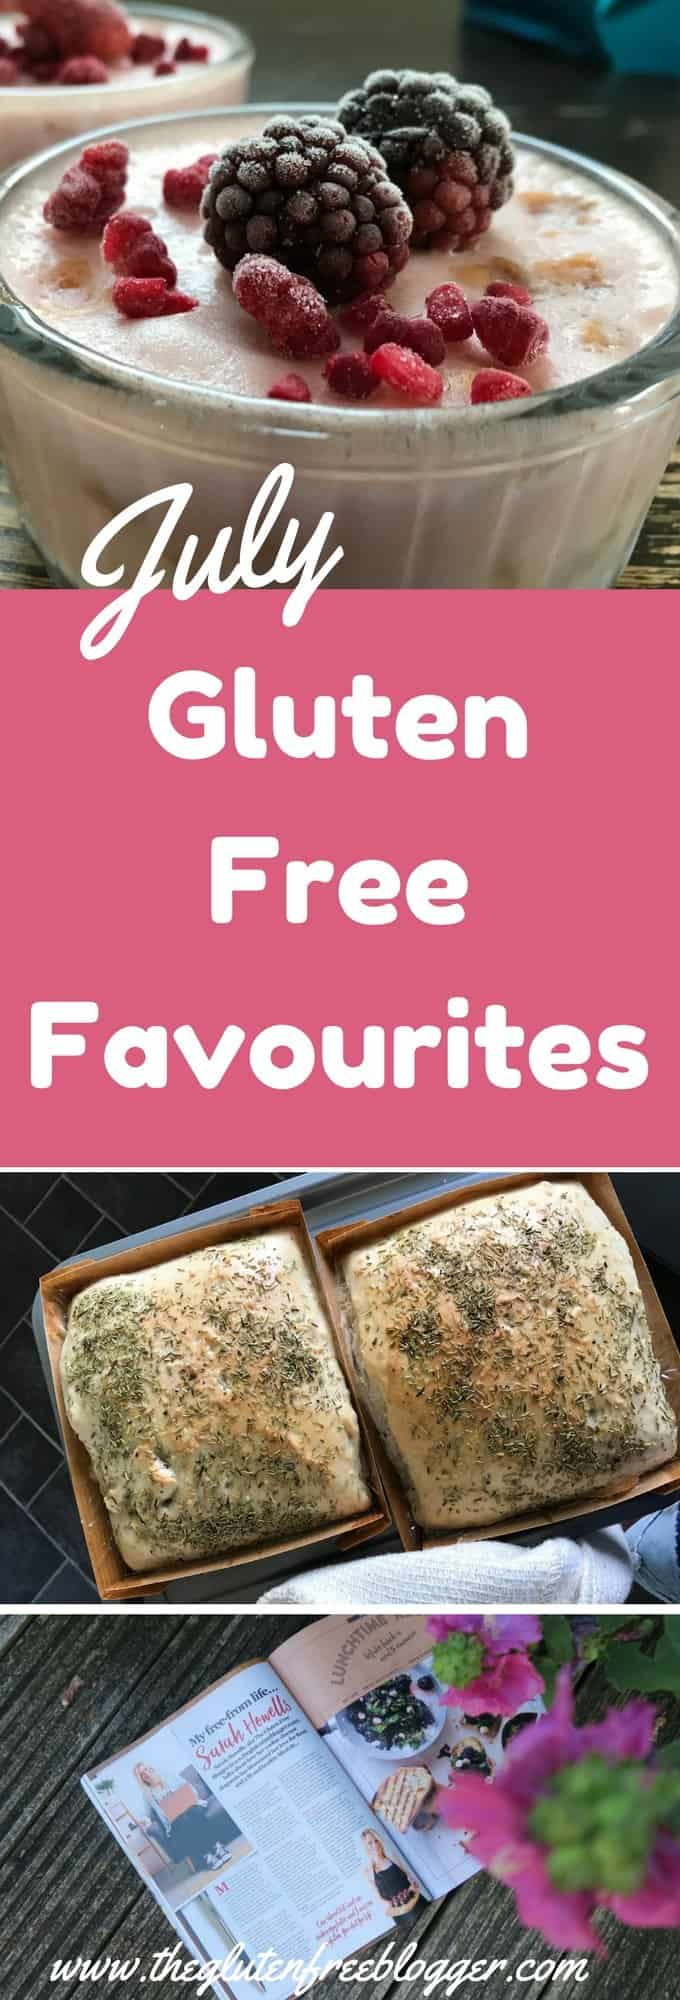 July favourites- My favourite gluten free foods from July 2017 - www.theglutenfreeblogger.com